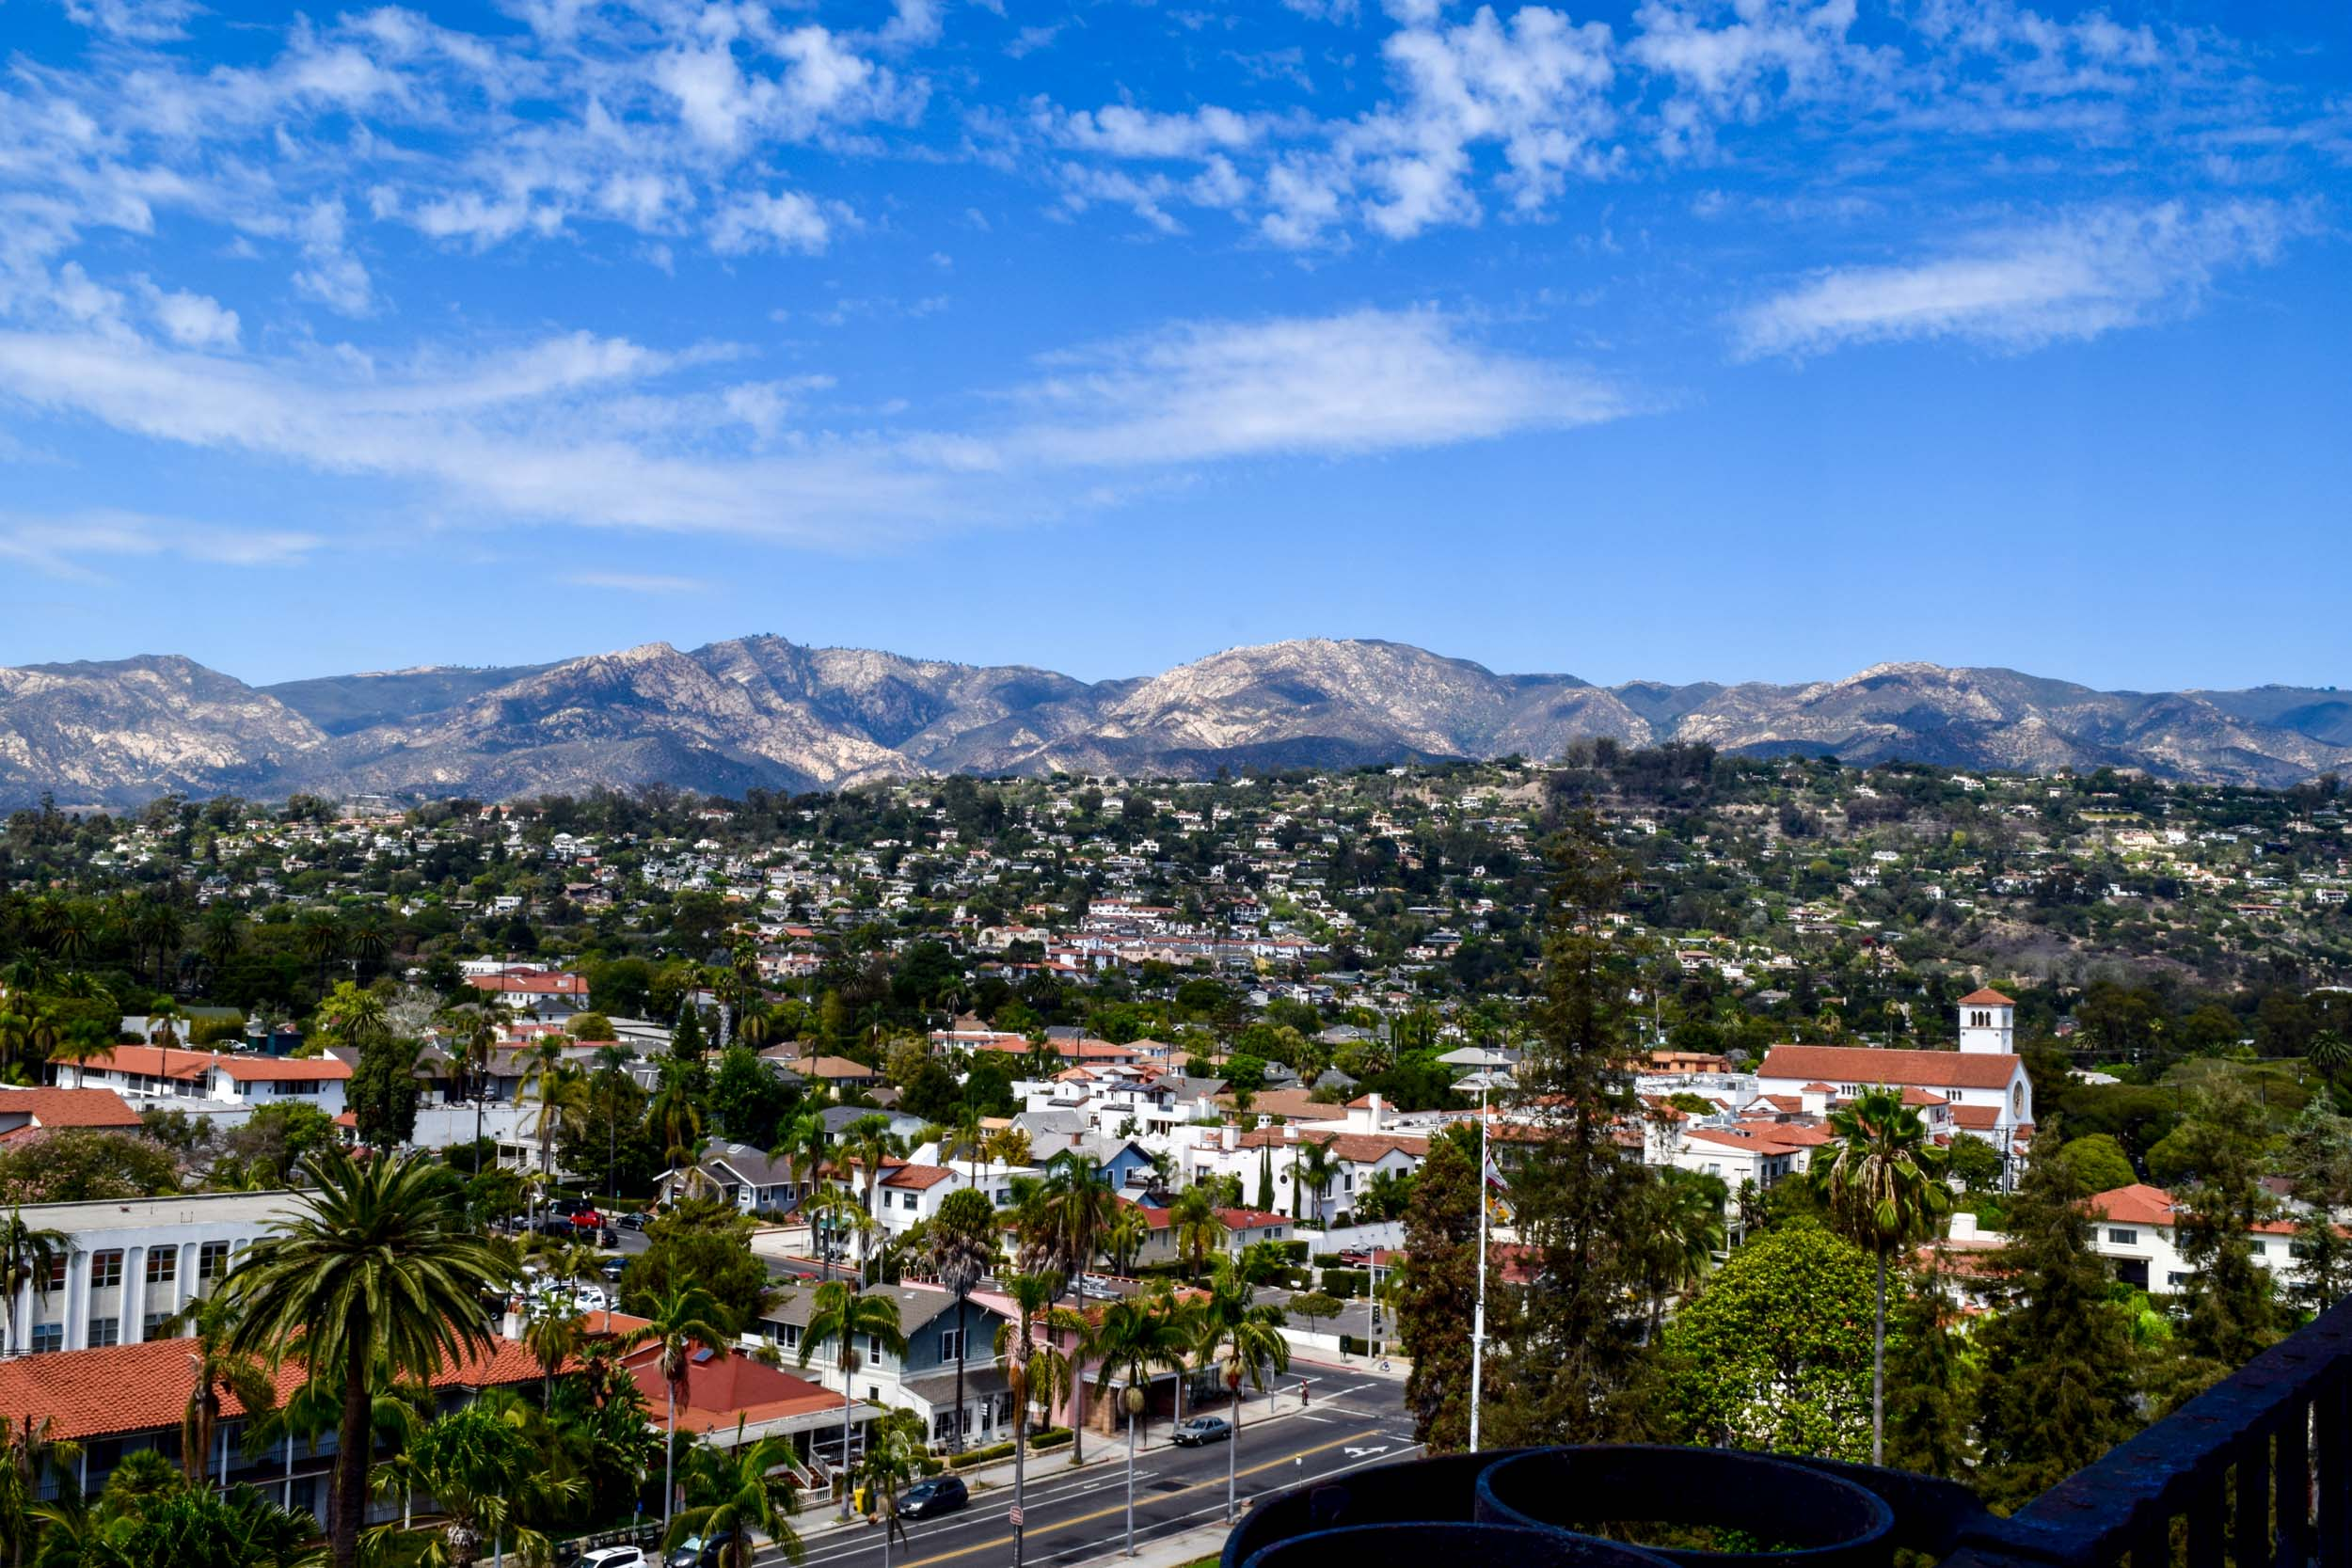 Views over the red-bricked roofs in Santa Barbara with the mountains behind. California, USA.